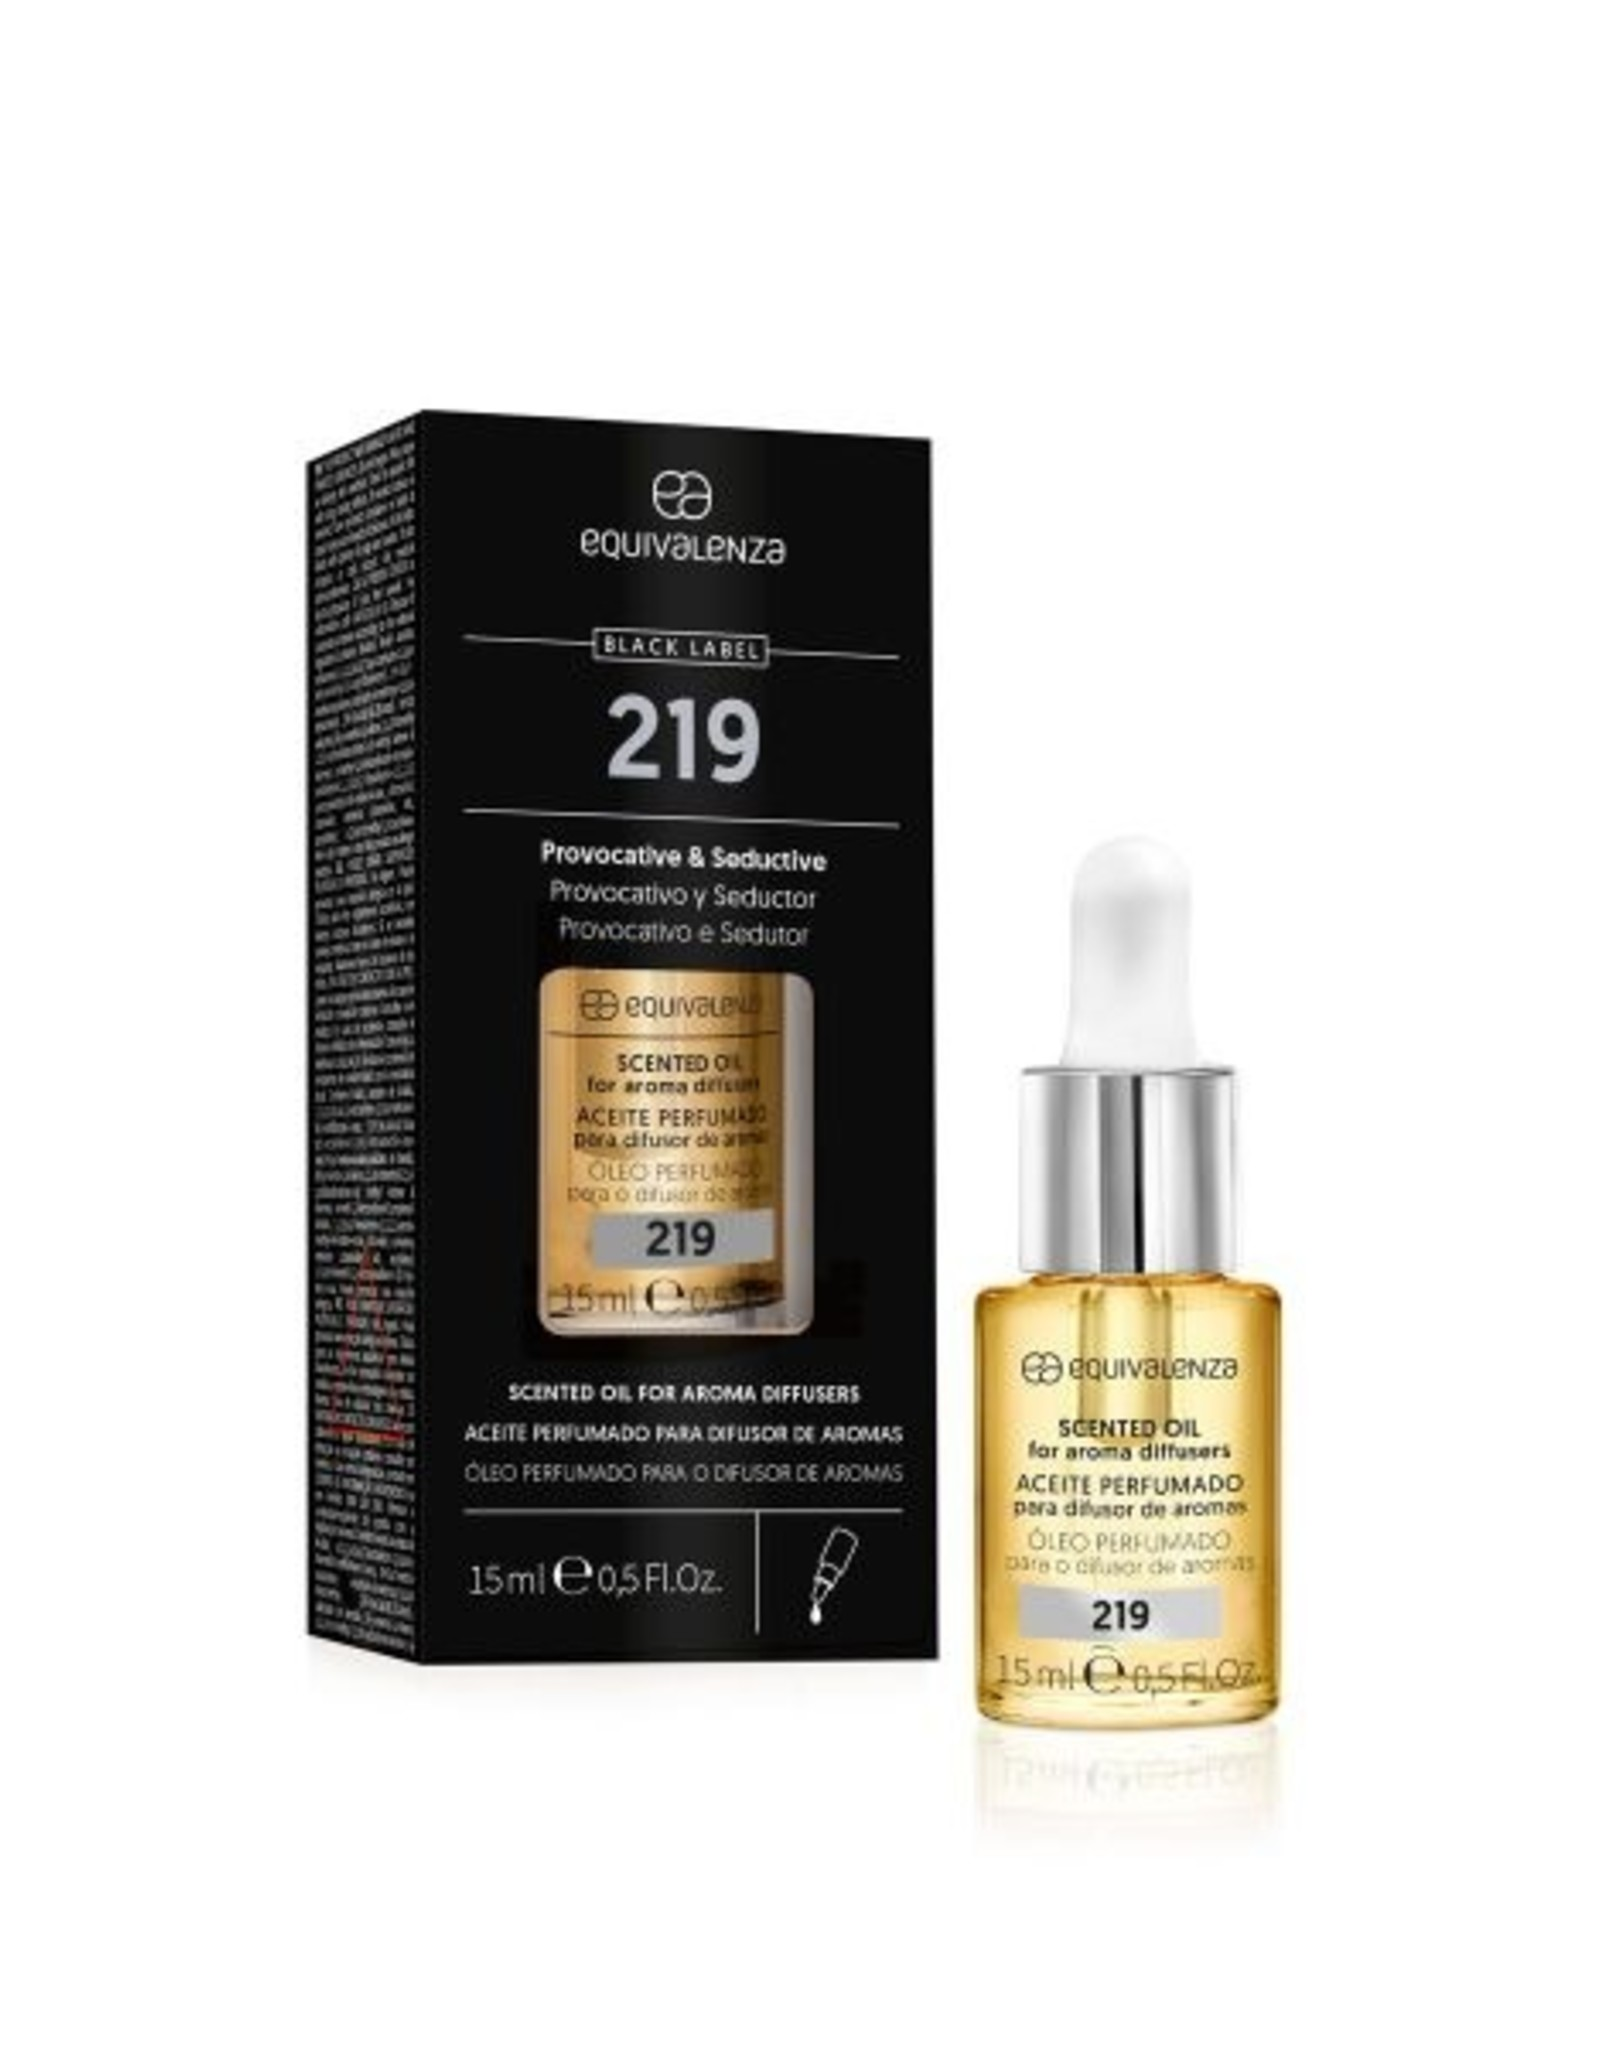 Equivalenza Water-Soluble Scented Oil – Black Label nº 219